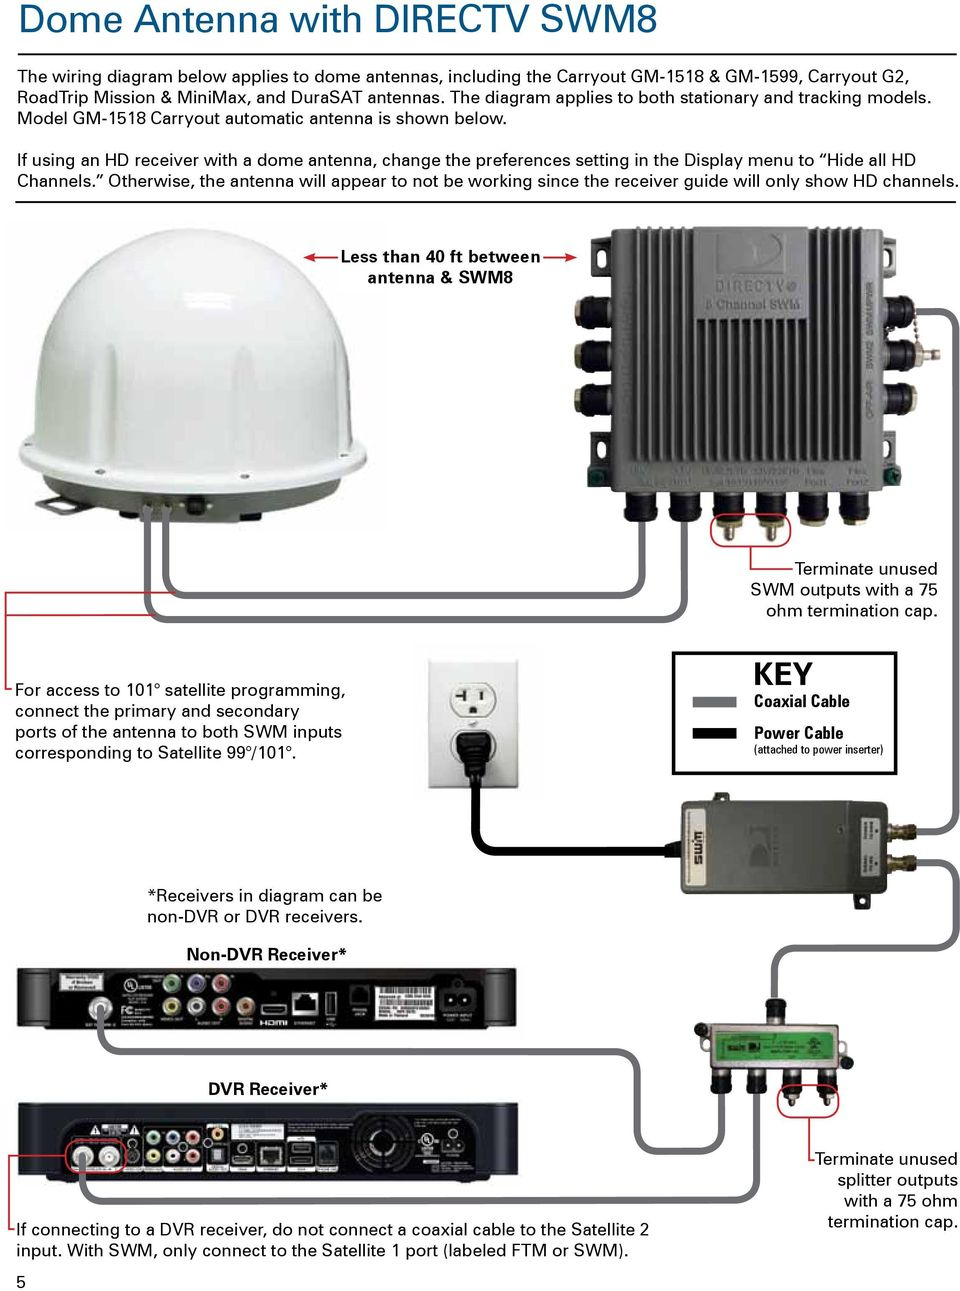 Guide for Using DIRECTV SWM Technology with Winegard Mobile Satellite TV  Antennas - PDF Free DownloadDocPlayer.net